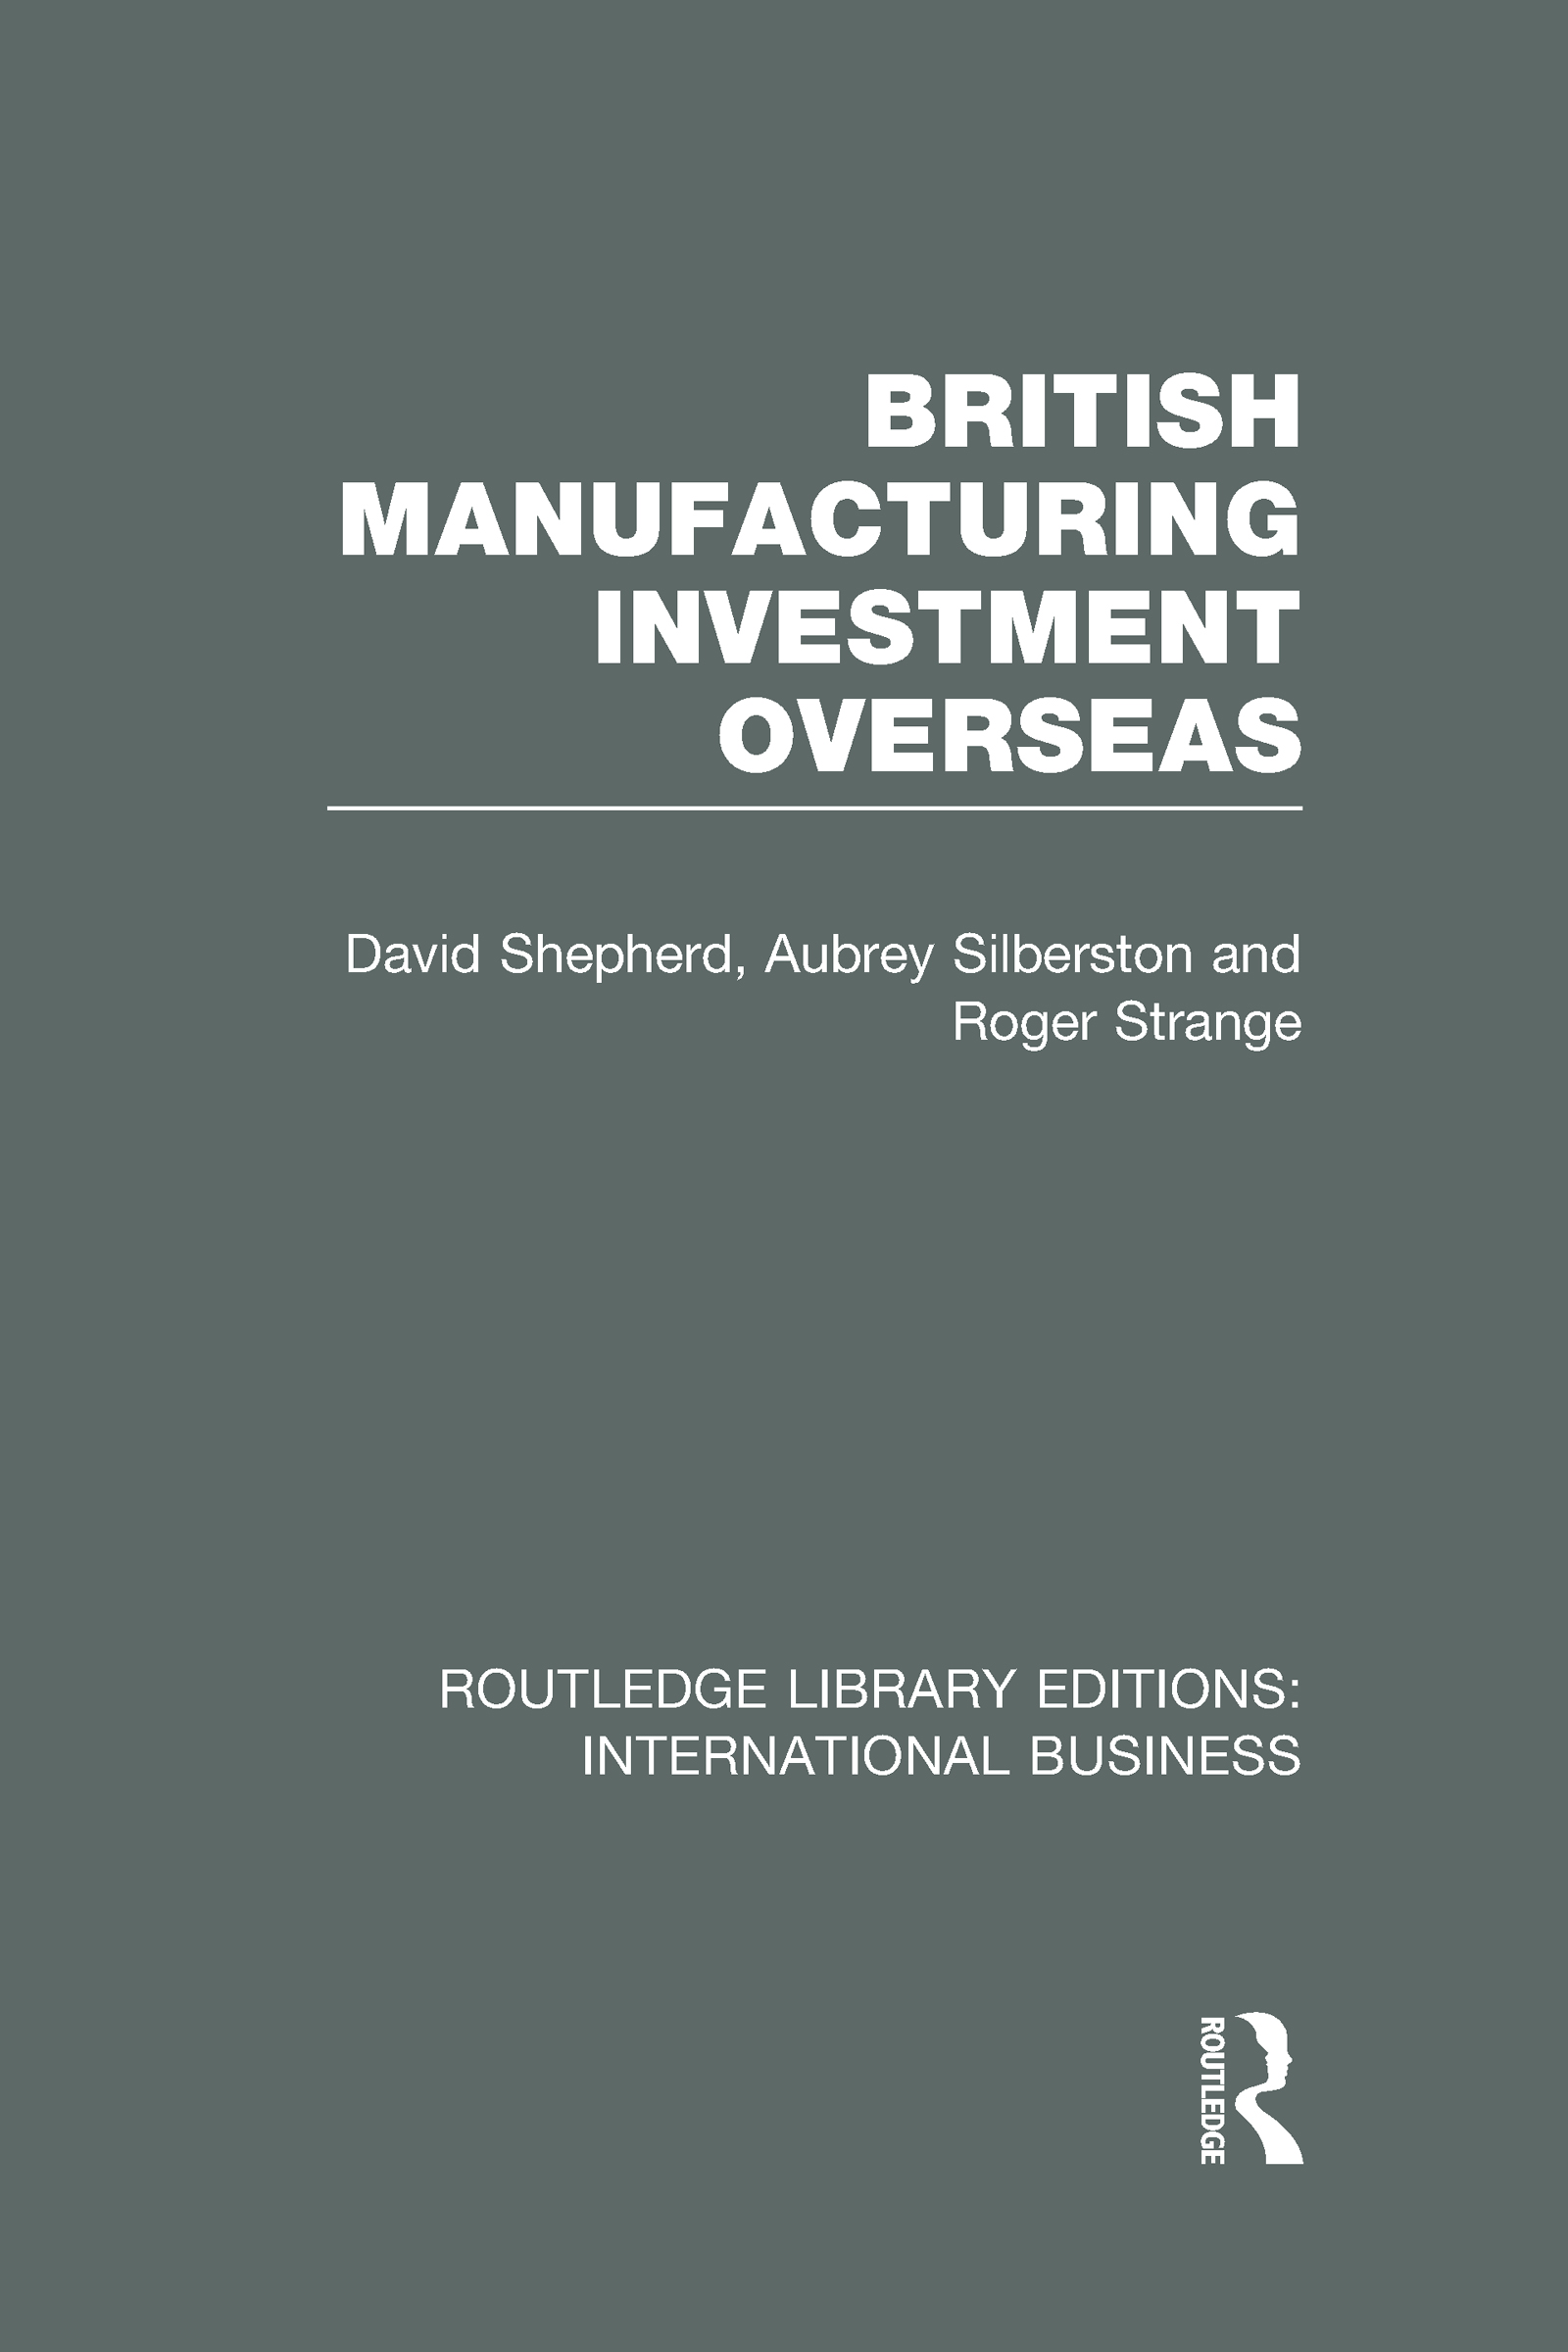 British Manufacturing Investment Overseas (RLE International Business) (Hardback) book cover